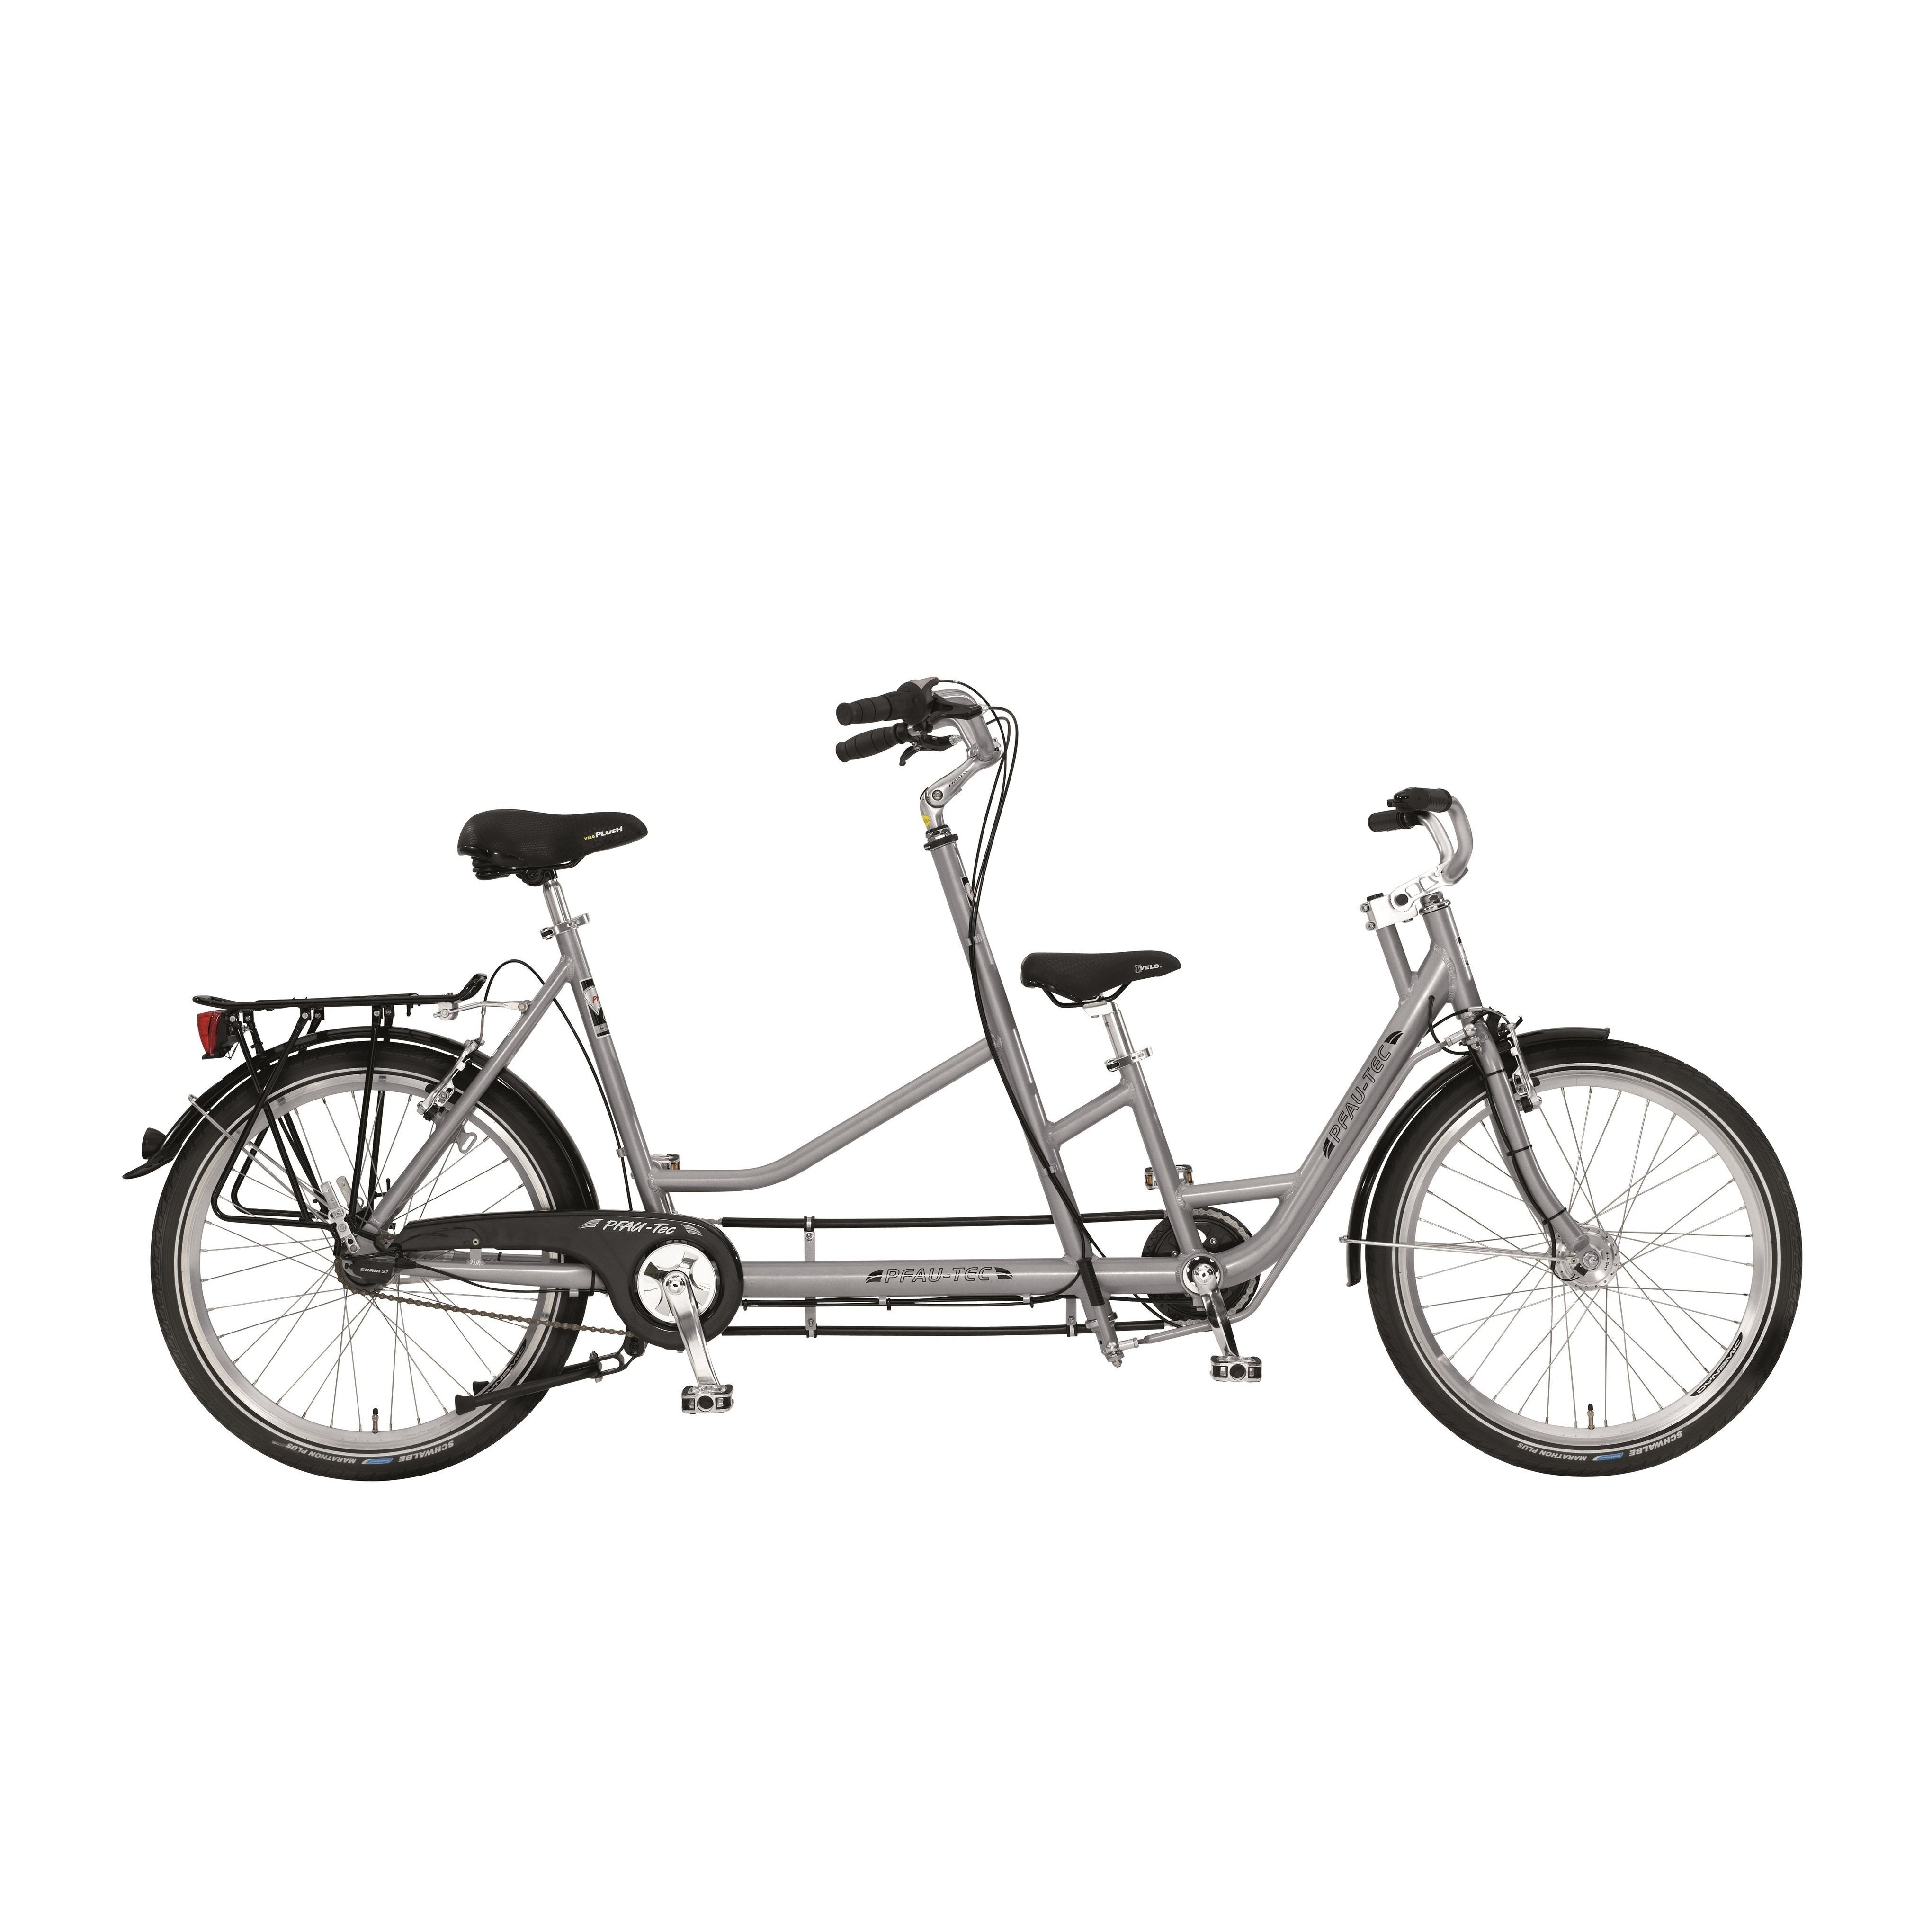 PFIFF Collecttivo 24 Inch 7-Speed Tandem Bicycle - Bicycle Ridetique.com